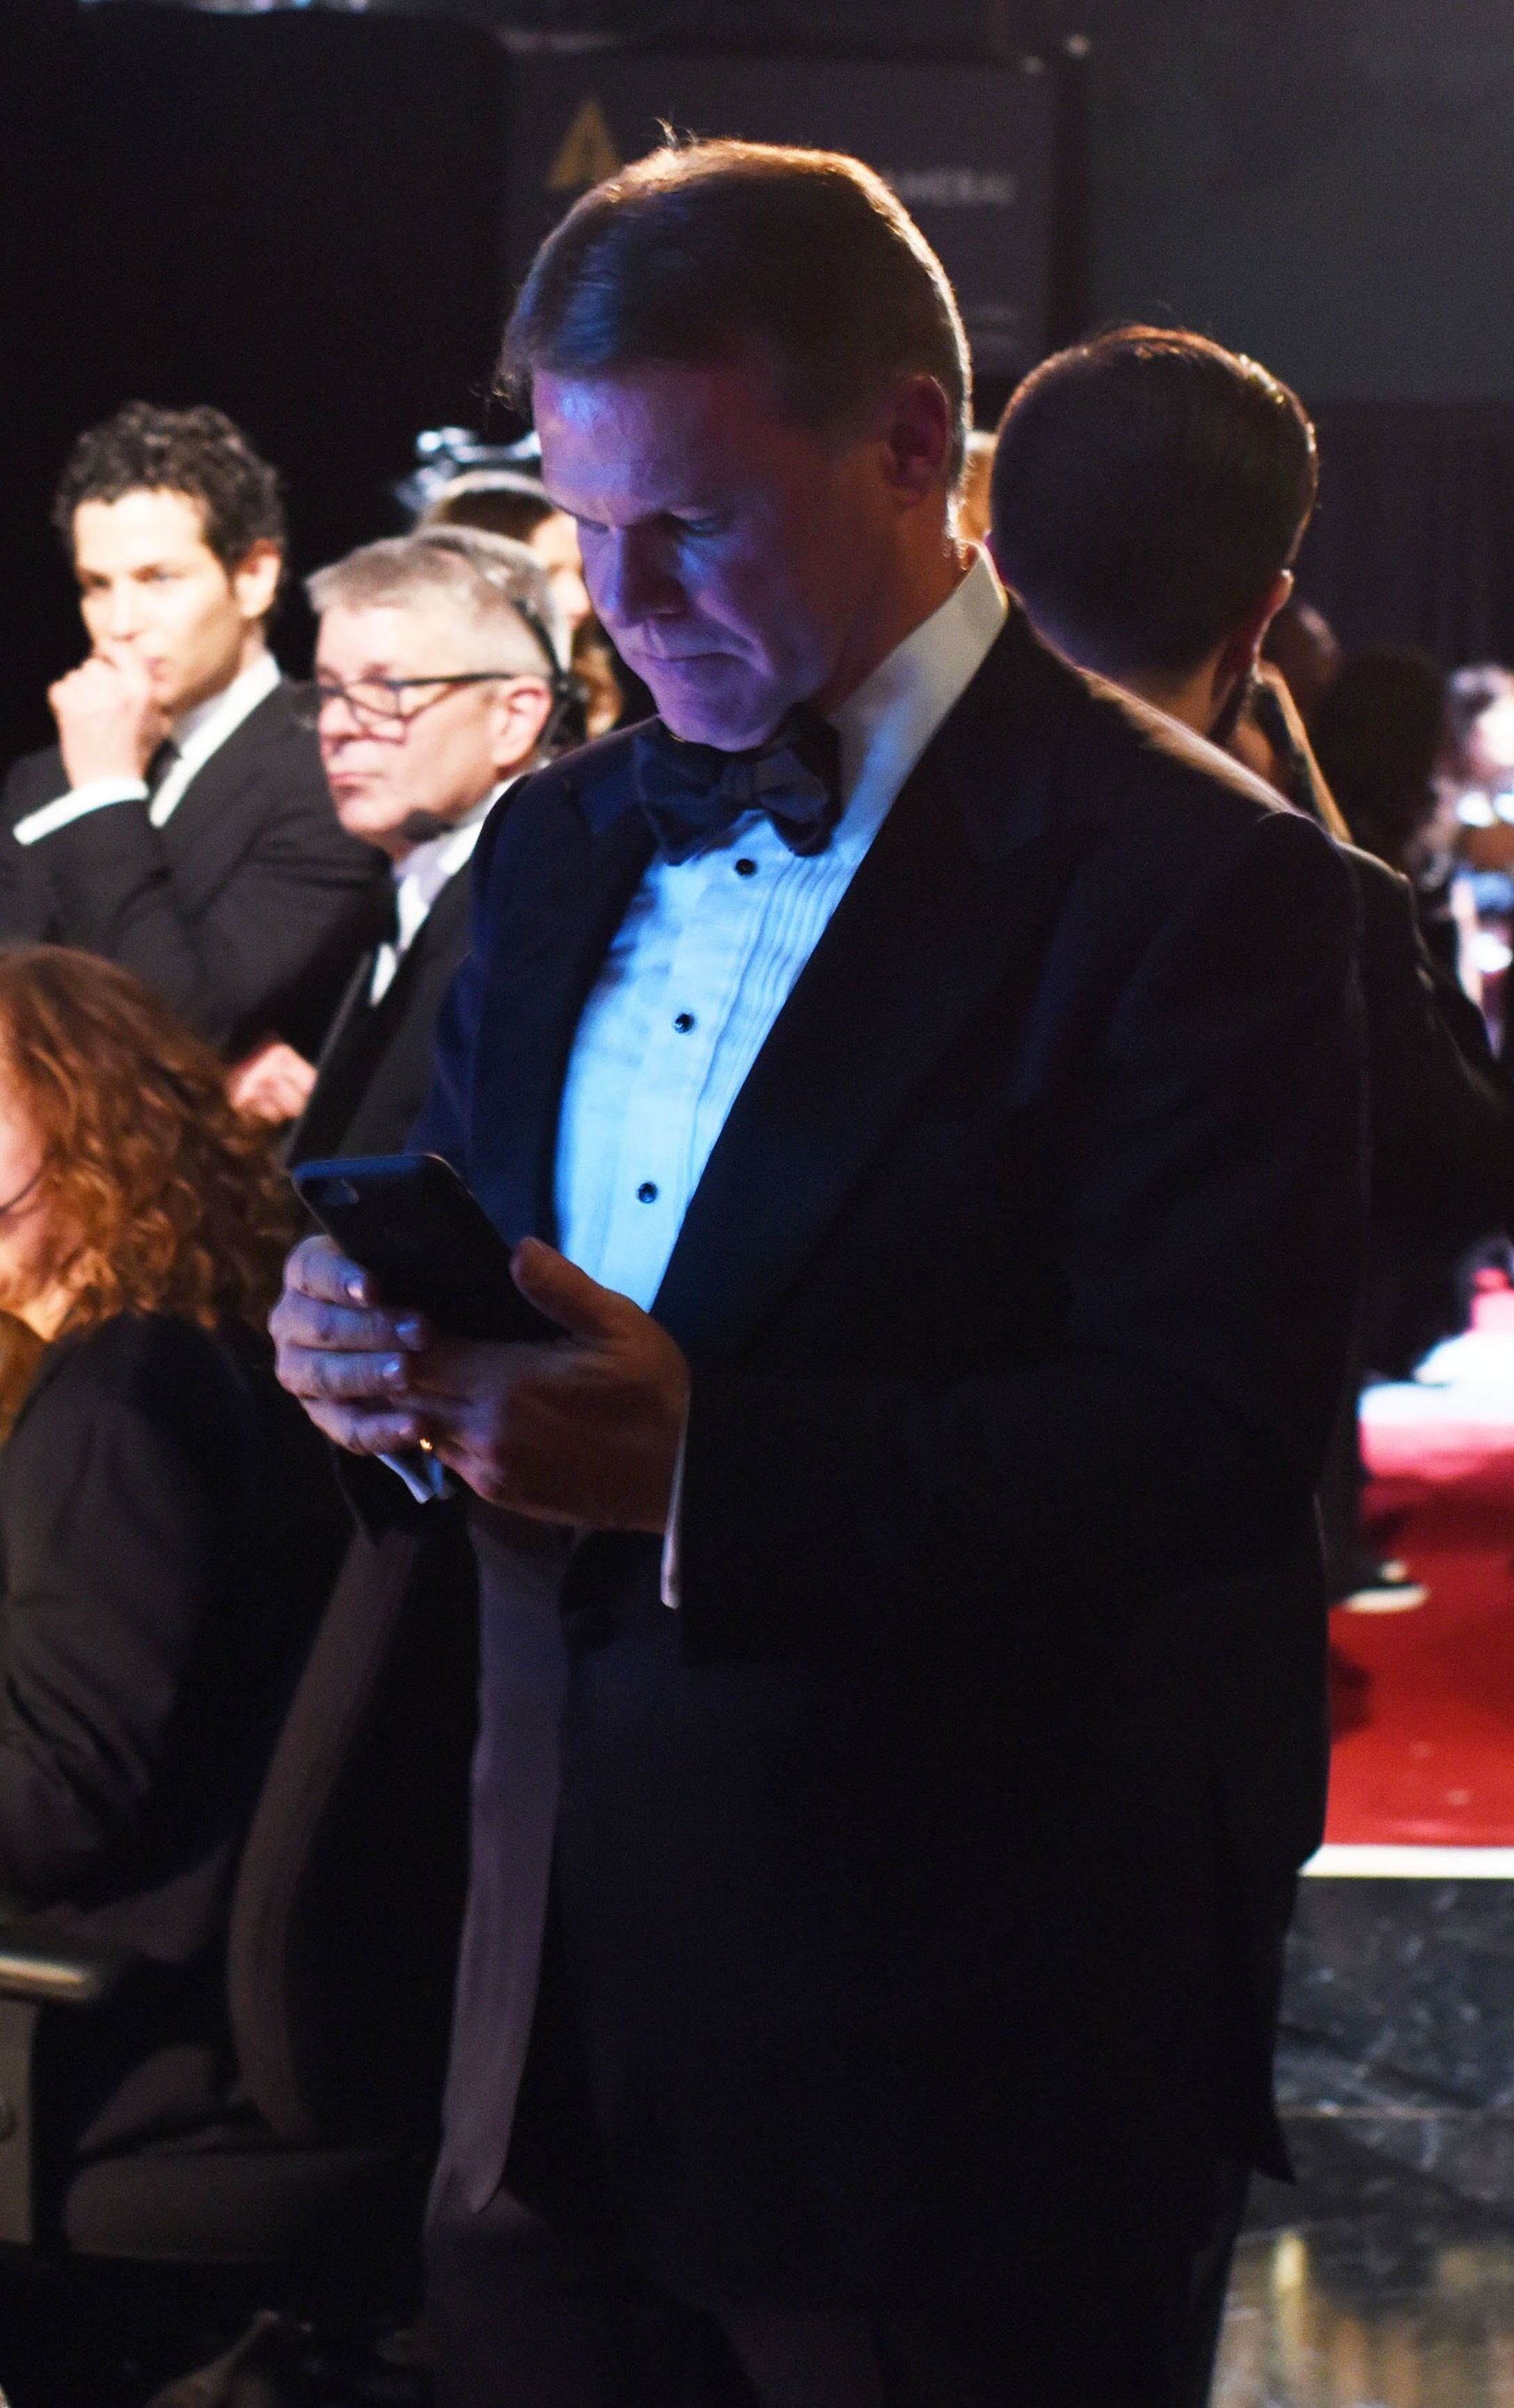 Brian Cullinan using his phone backstage at 9:04pm PST at the 89th annual Academy Awards.